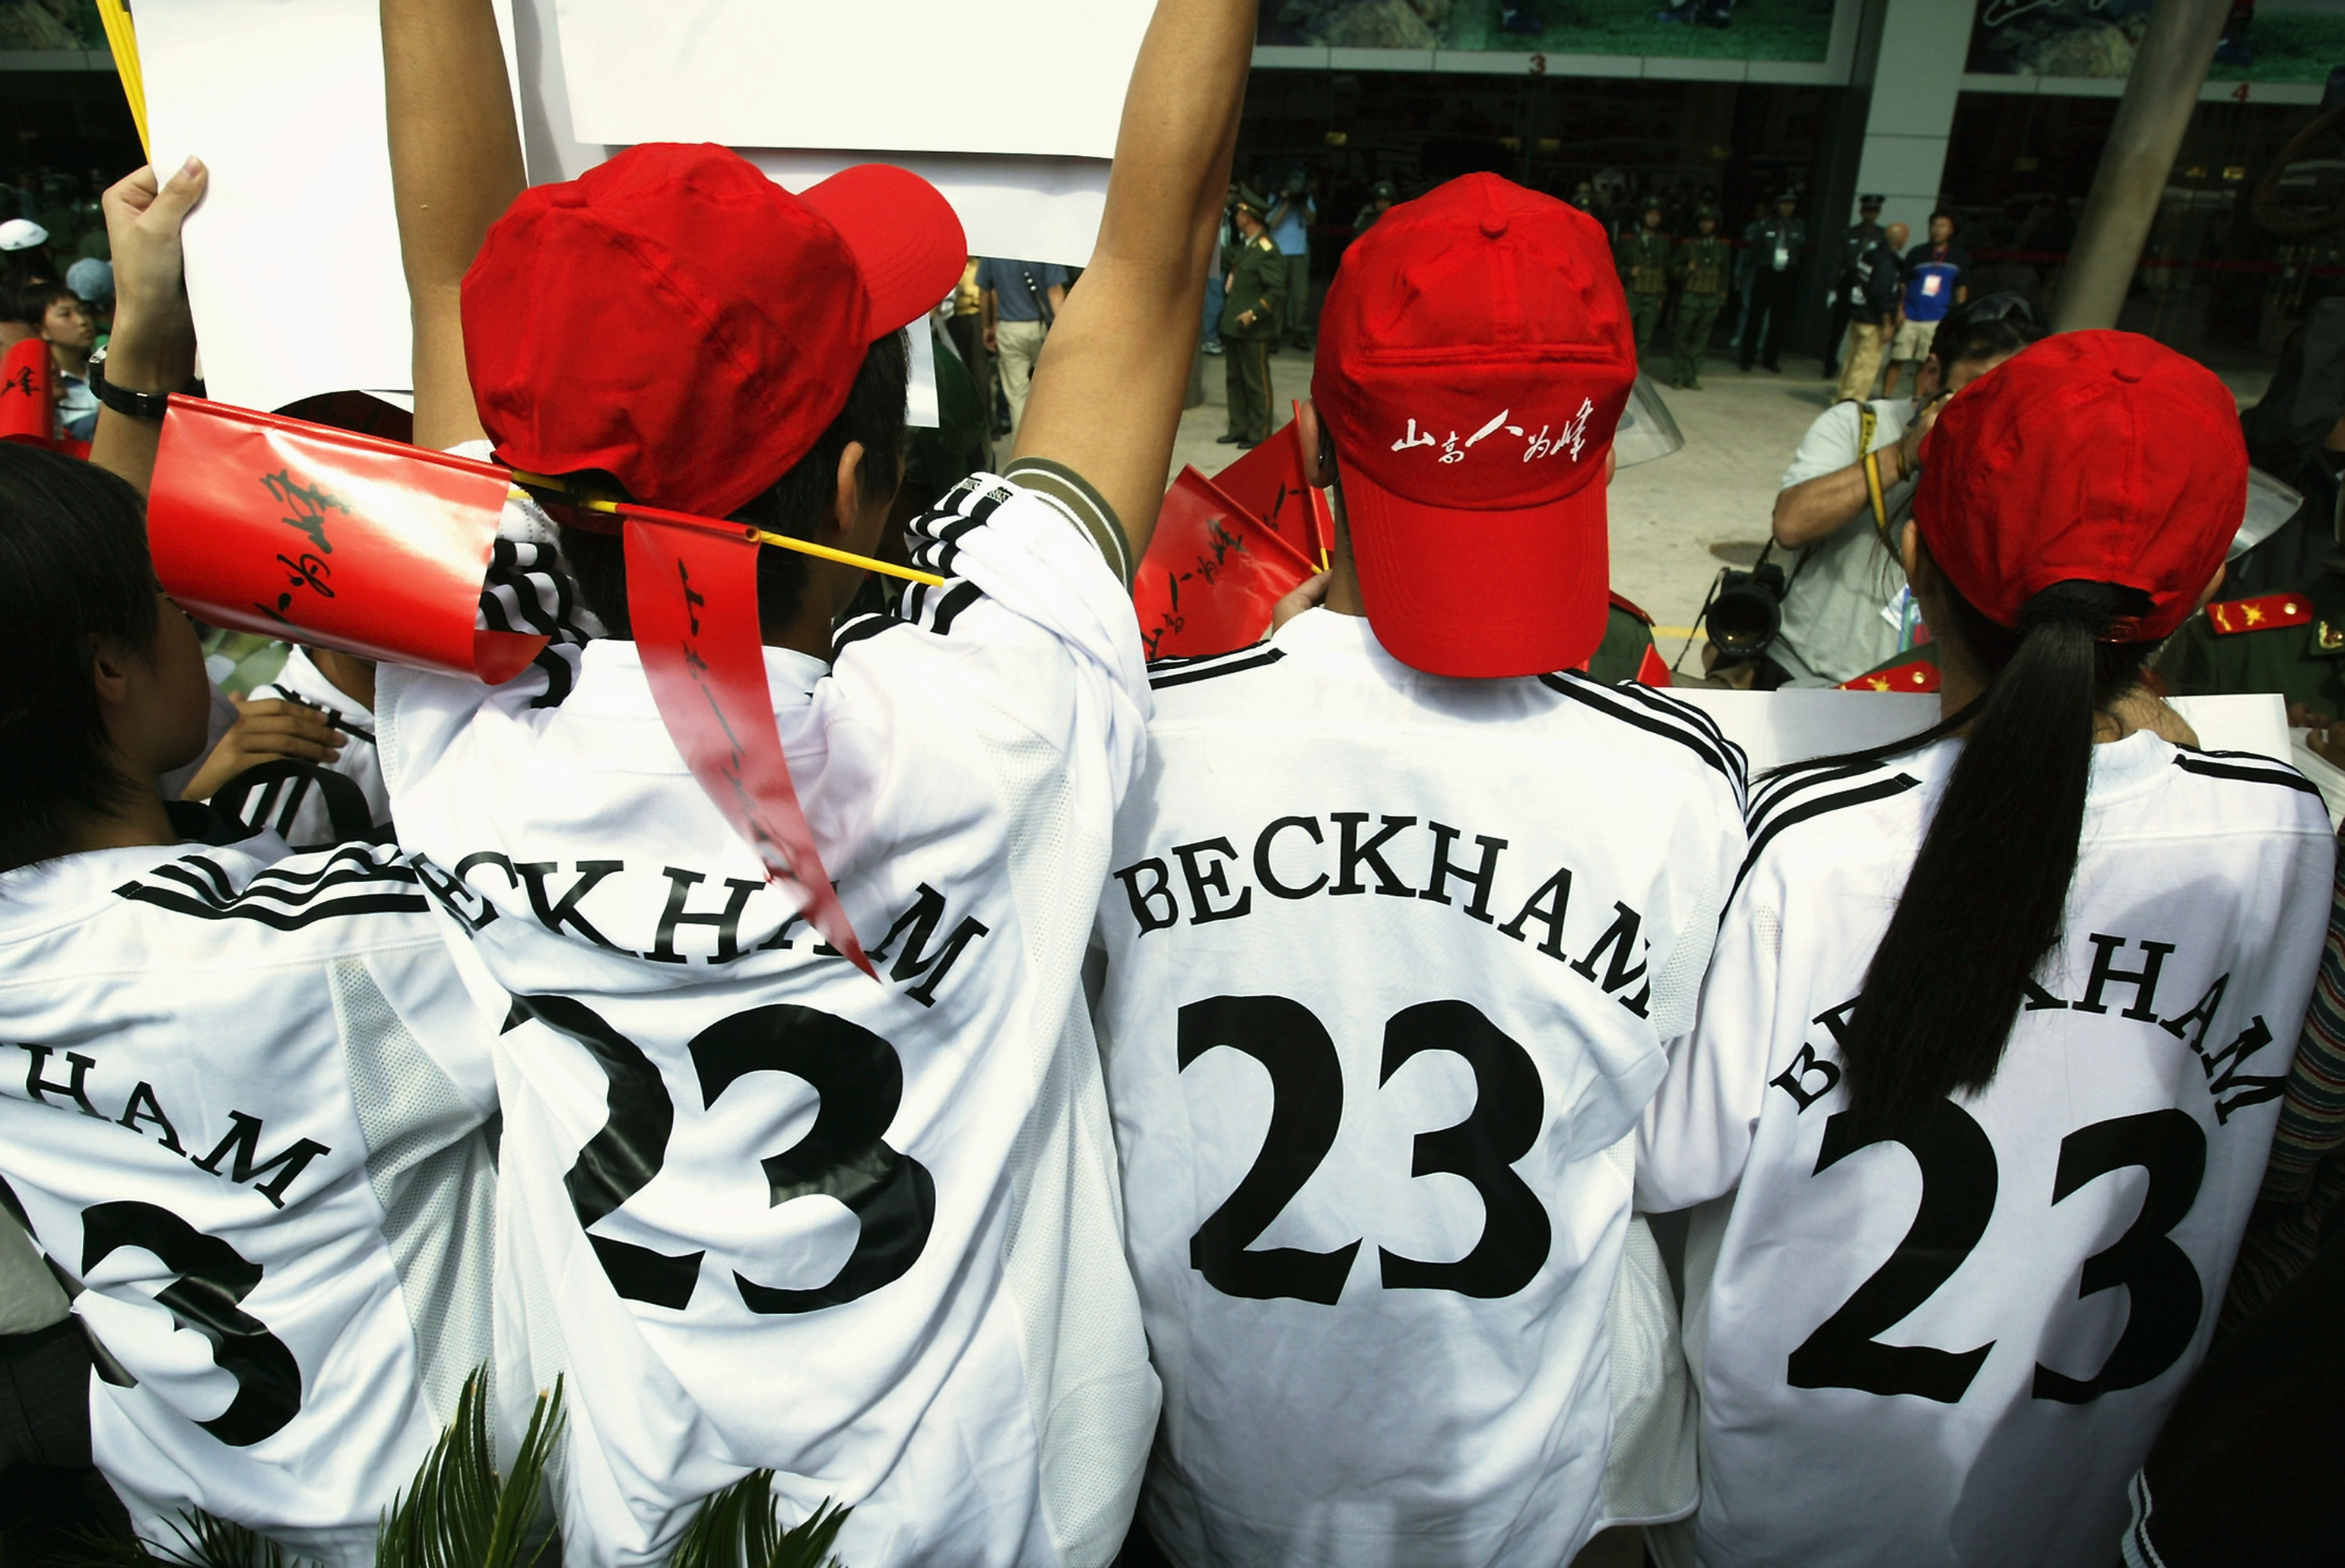 KUNMING, CHINA - JULY 29: David Beckham fans wait outside the Yunnan Tuodong Sports Stadium for the team to arrive for a training session on July 29, 2003 at the Yunnan Tuodong Sports Stadium in Kunming, China.(Photo by Alex Livesey/Getty Images)